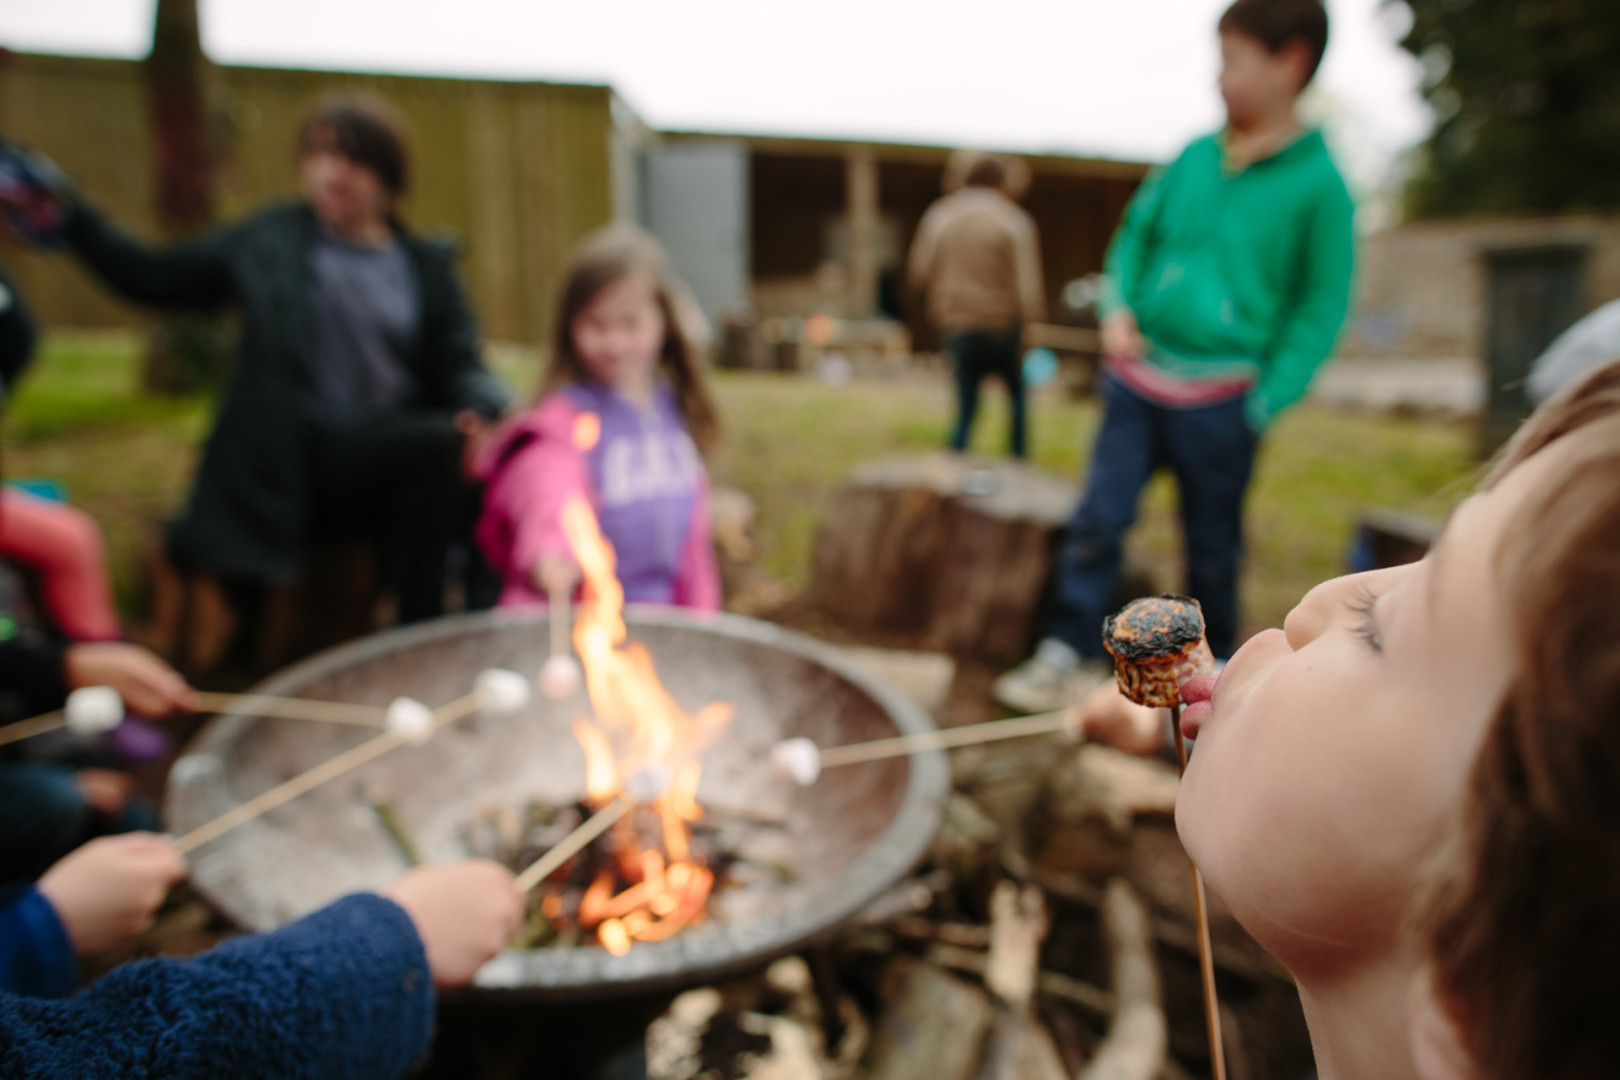 Who can resist toasted marshmallows?